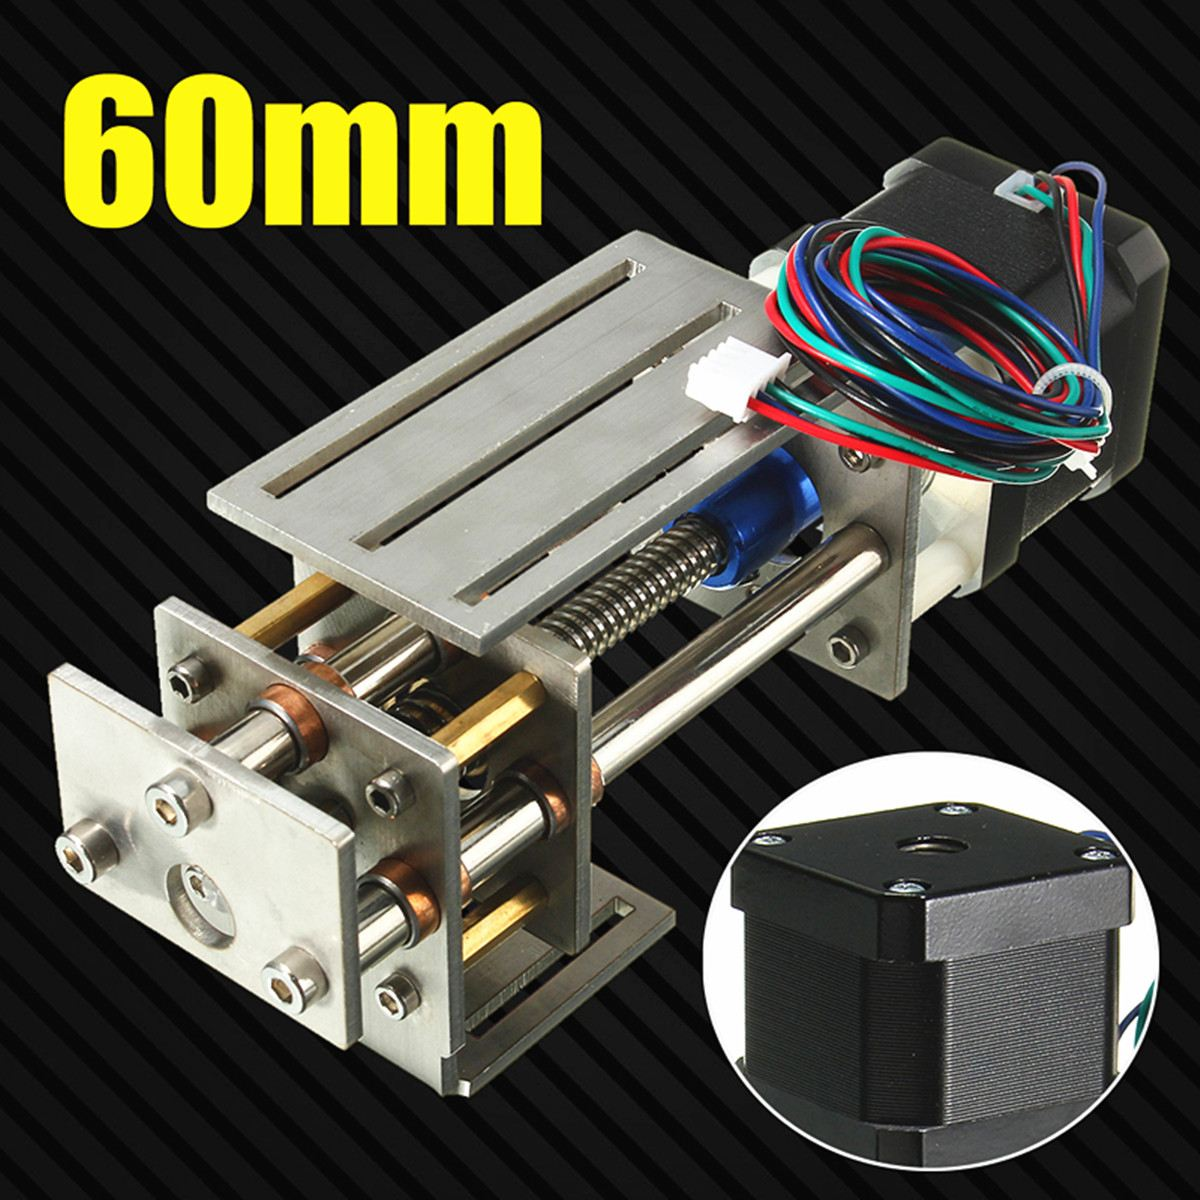 1Pcs 12V New 60MM 3 Axis DIY CNC Z Axis Slide Engraving Engrave Machine Milling Linear Motion cnc z axis slide table 60mm stroke diy milling linear motion 3 axis engraving machine new